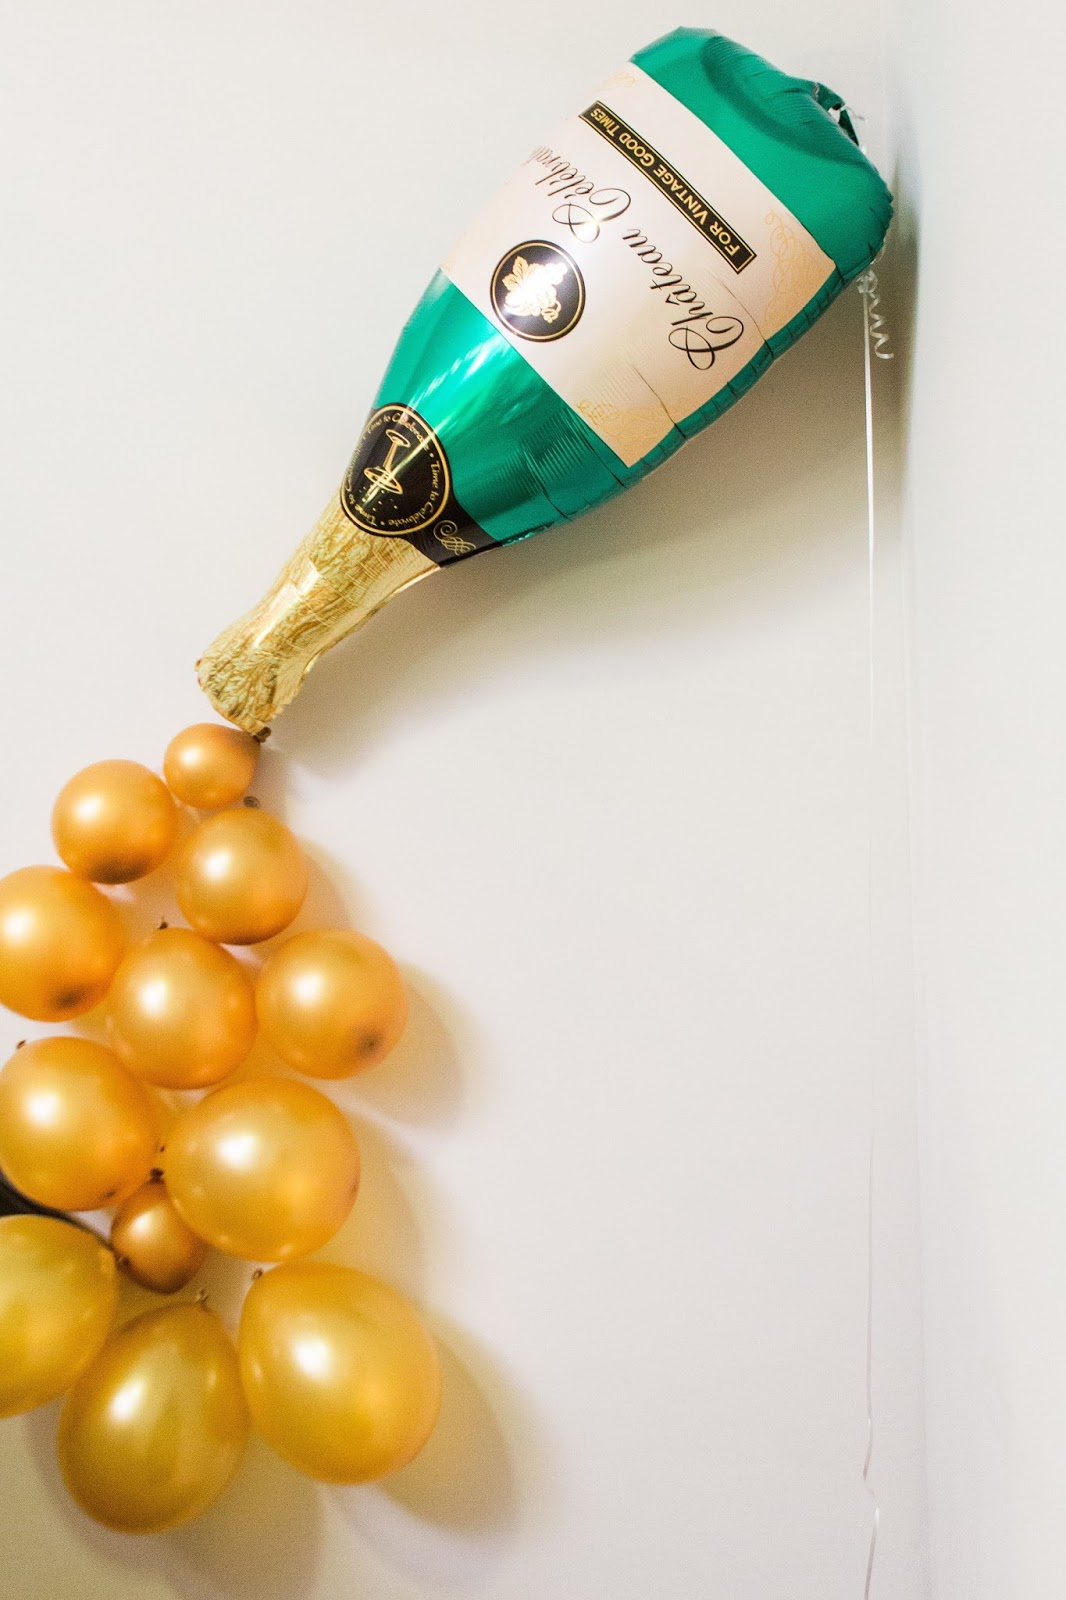 diy photobooth backdrop, champagne balloon design, NYE holiday party ideas